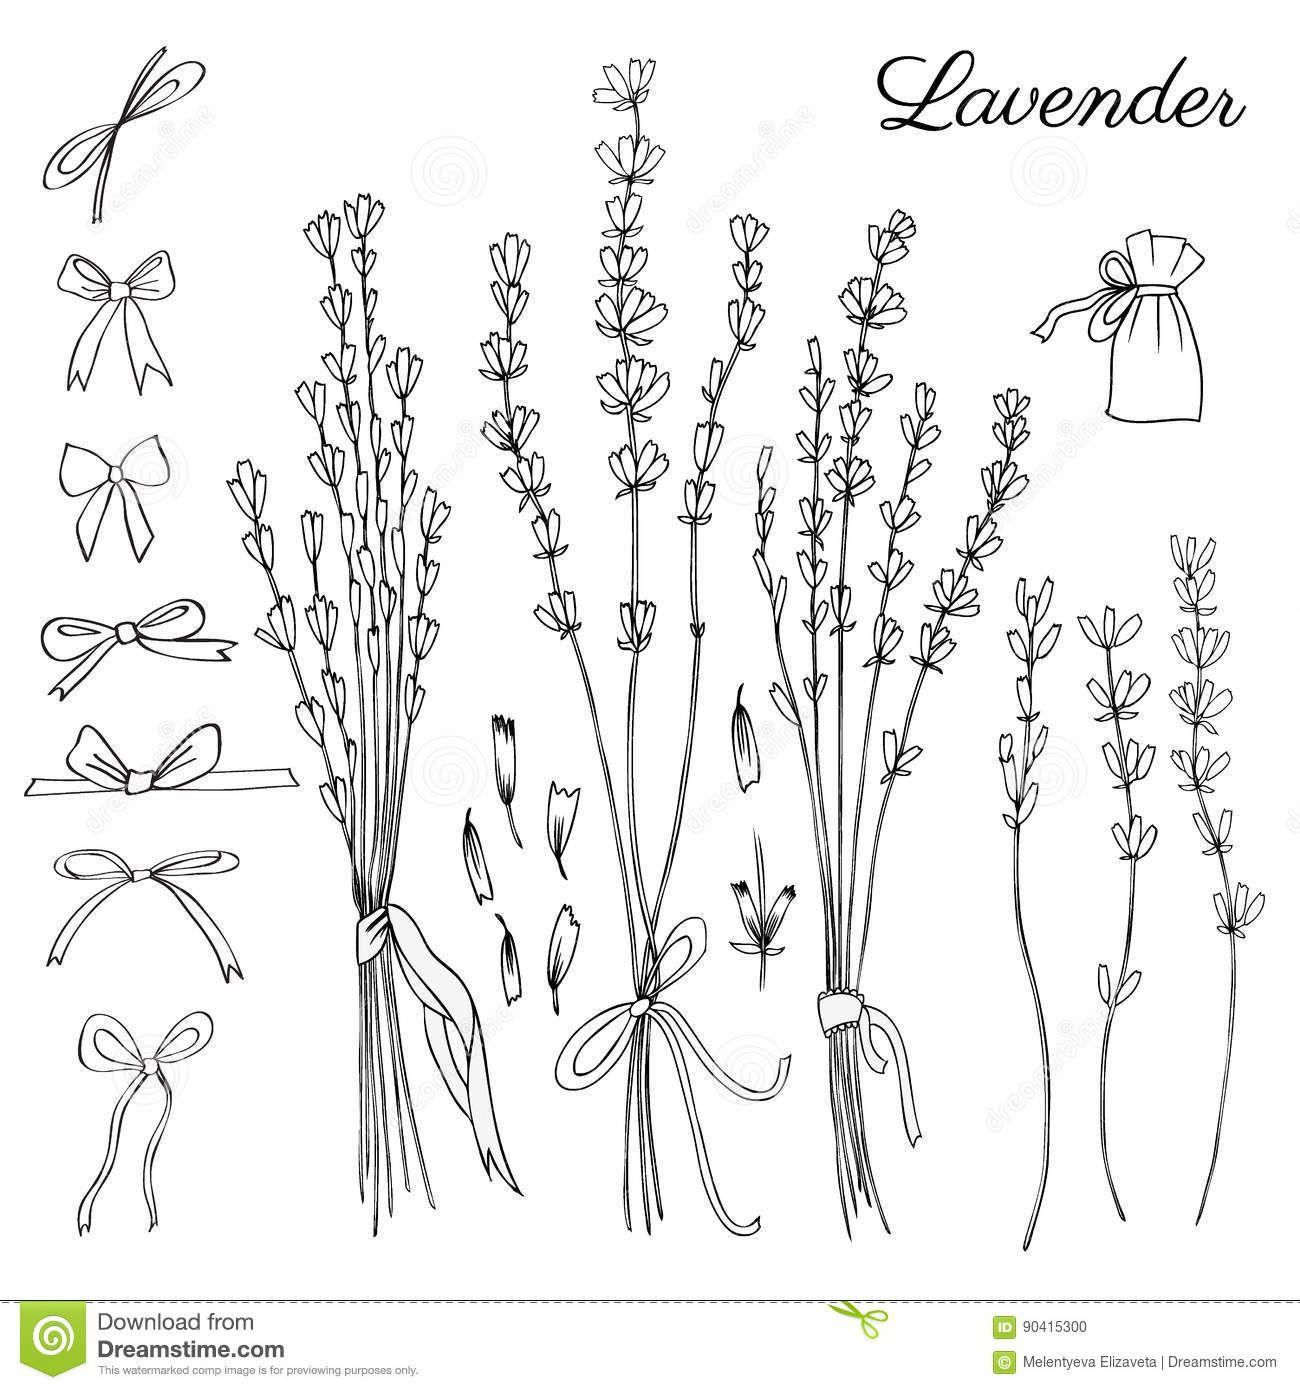 Bullet Journal Drawing Idea Lavender Drawing Lavender Bunch